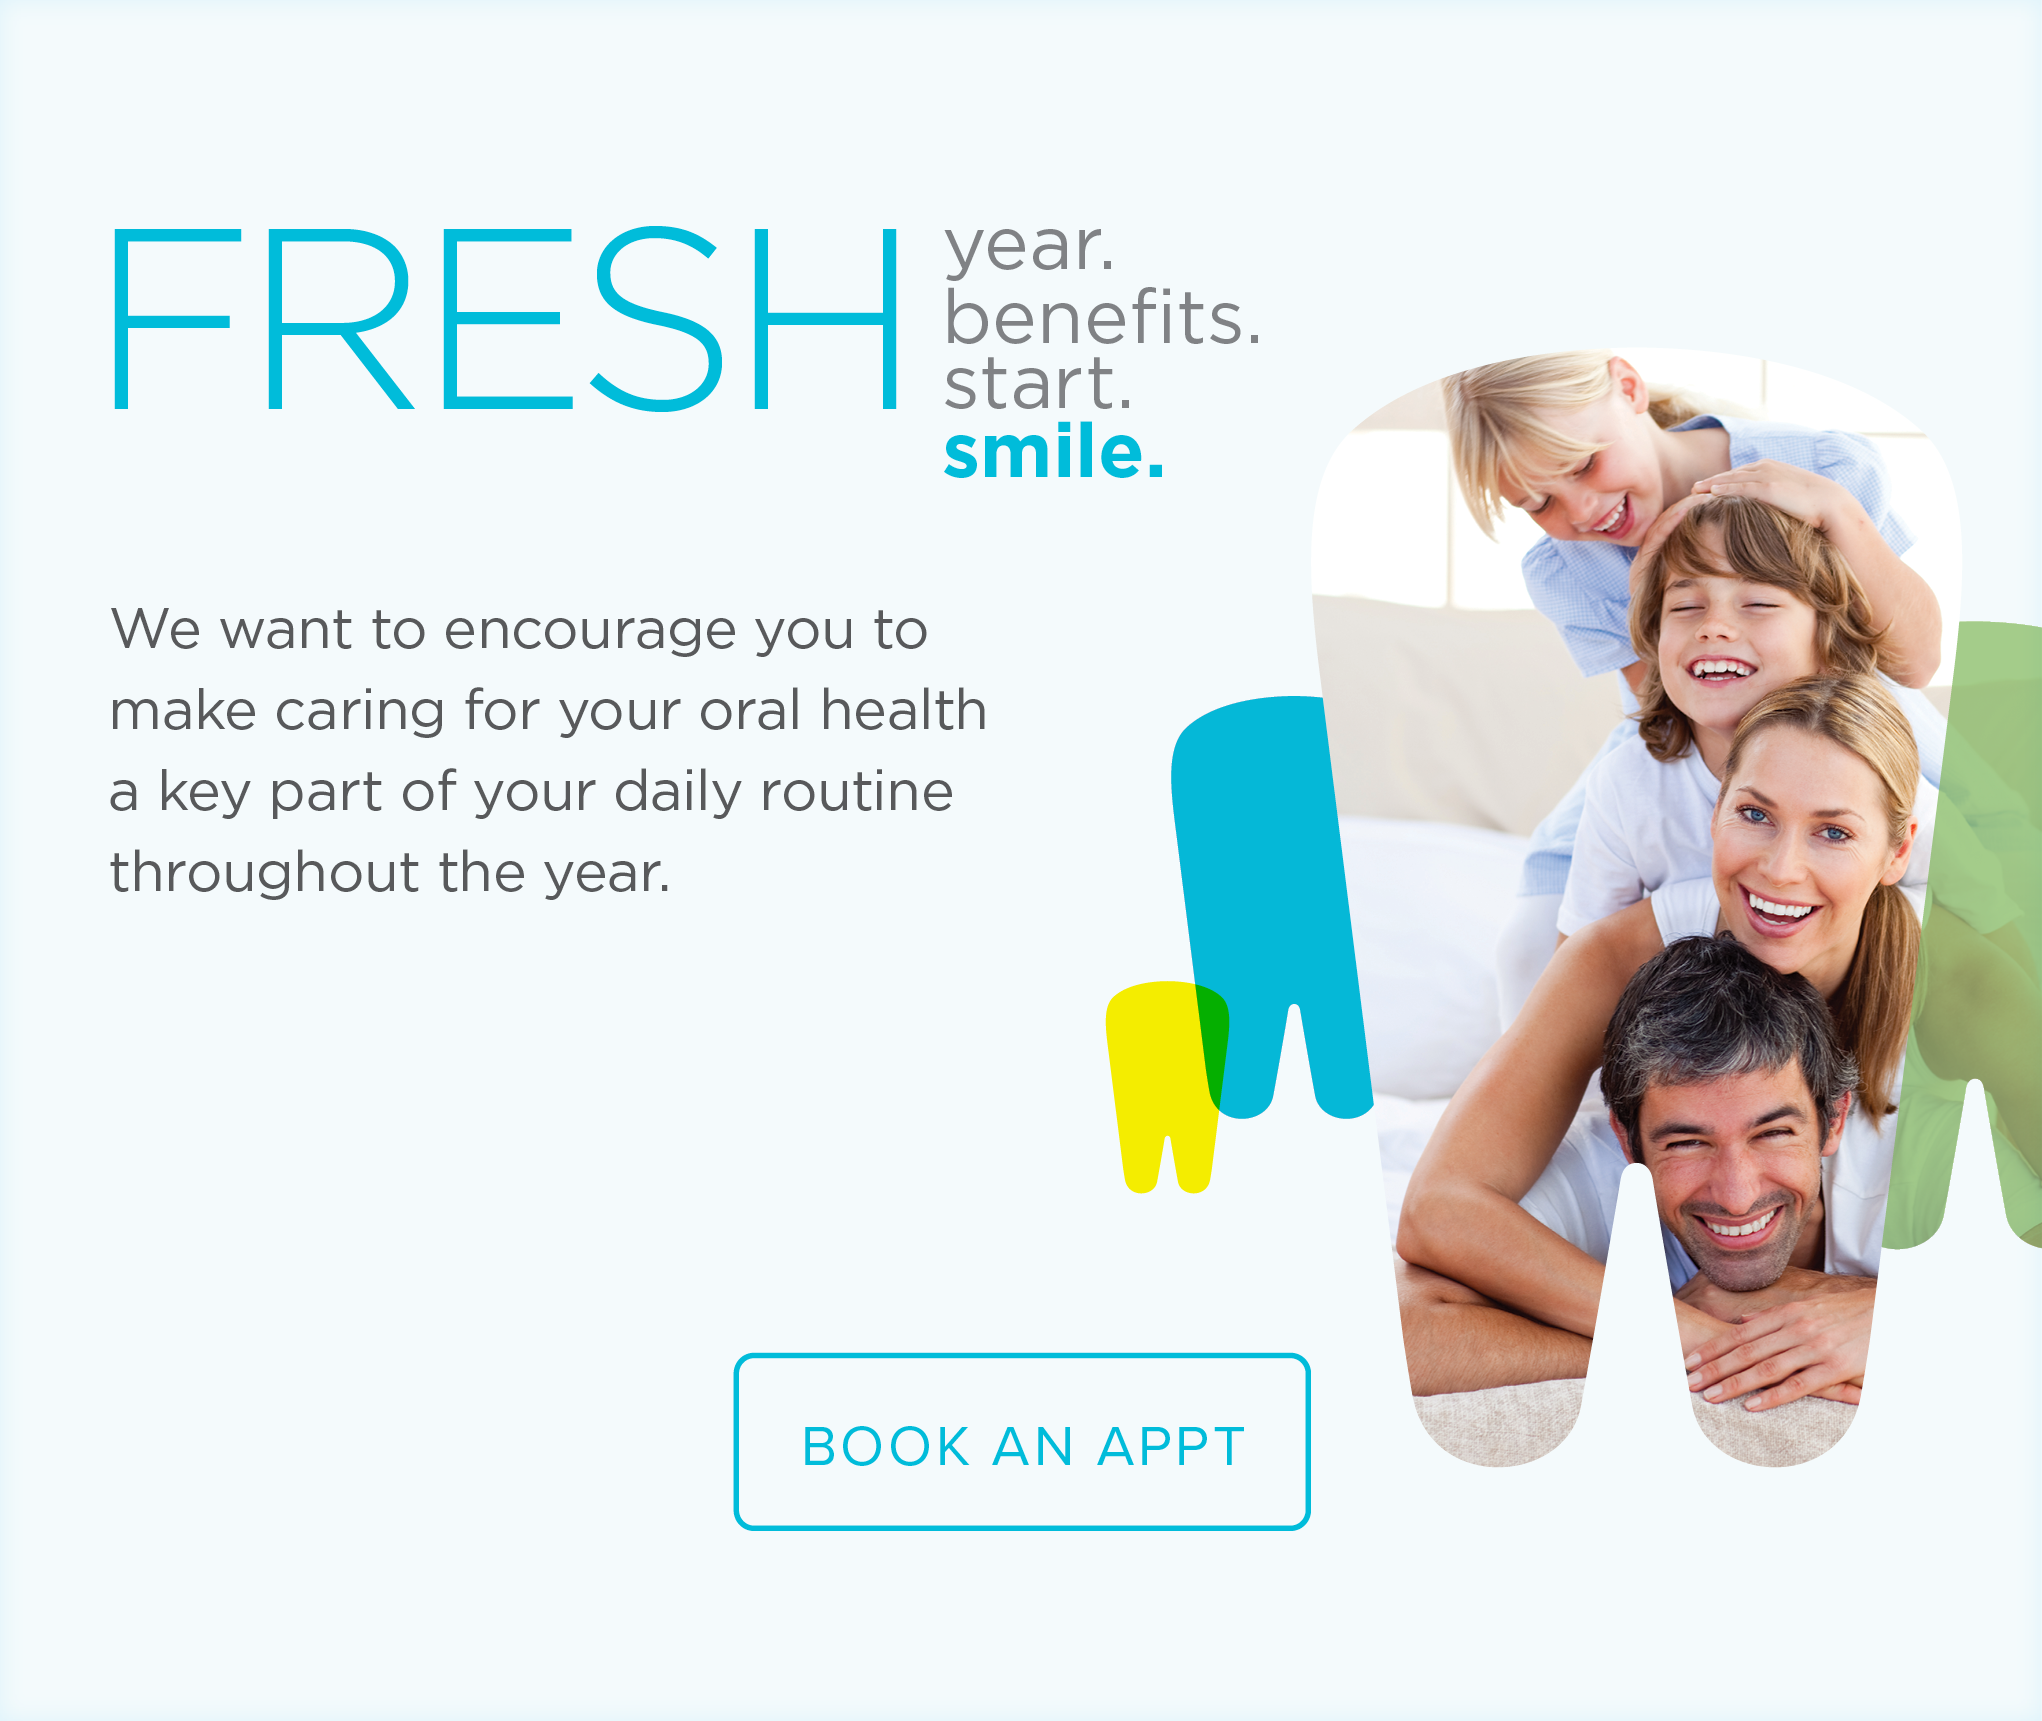 Santa Fe Modern Dentistry and Orthodontics - Make the Most of Your Benefits